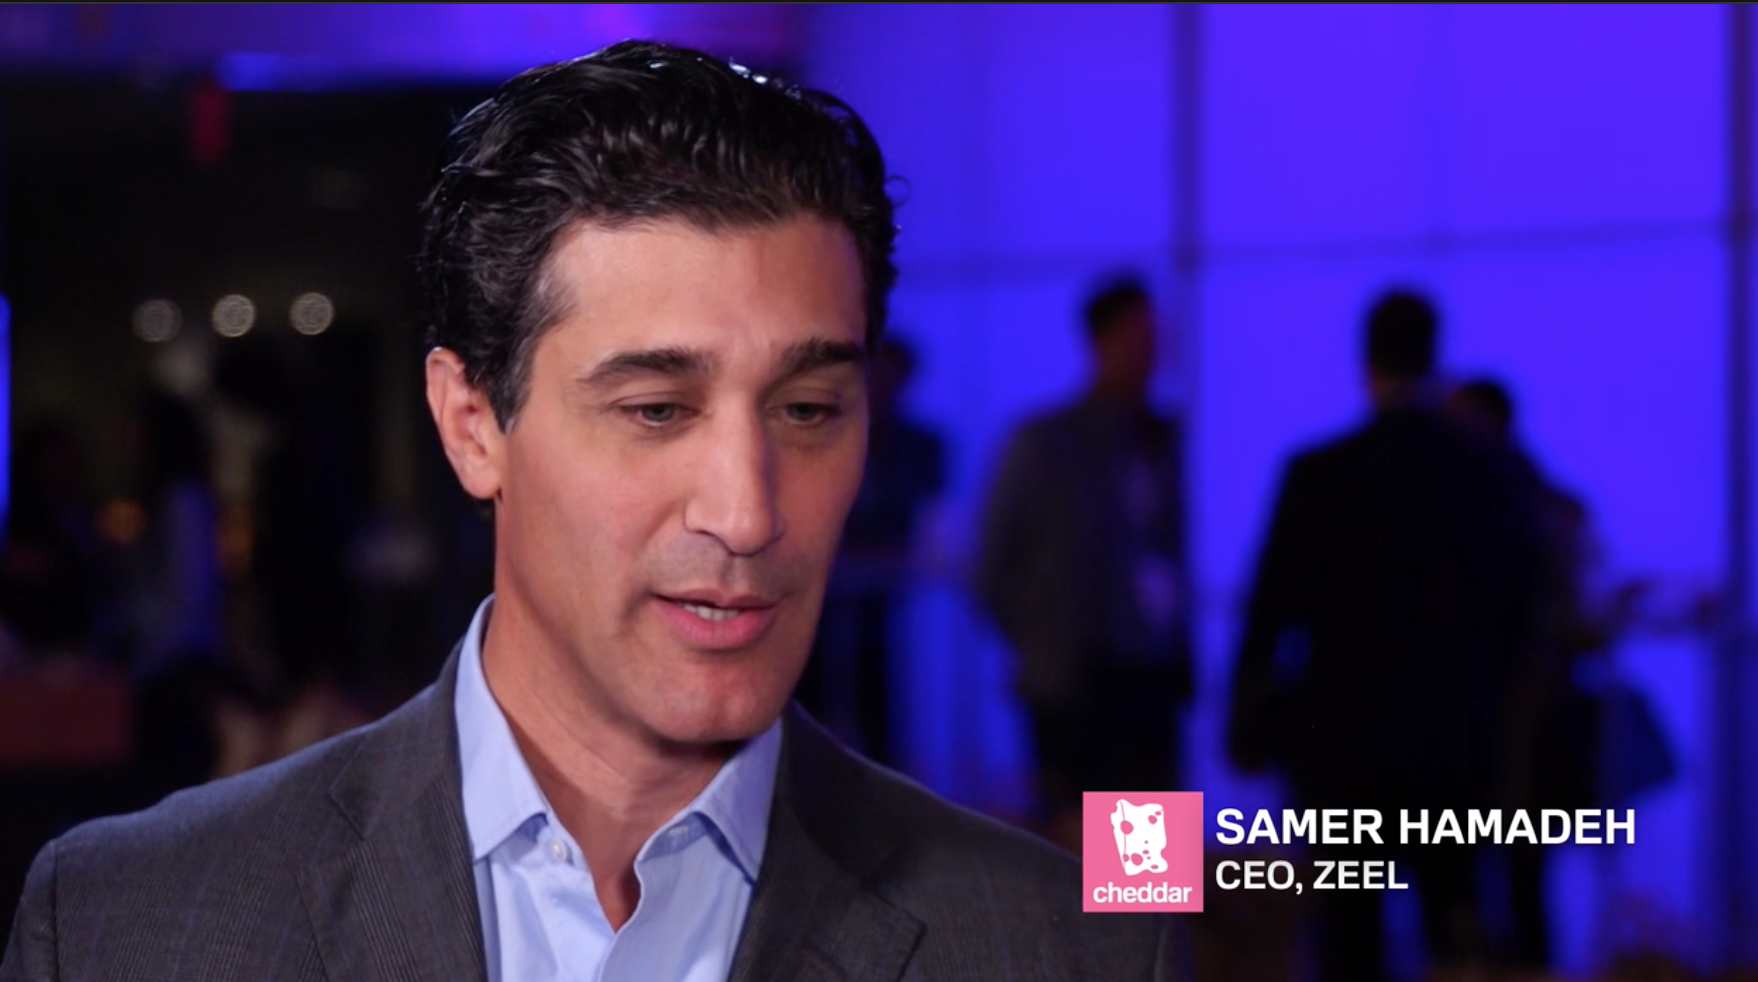 Zeel CEO Samer Hamadeh Talks About Disrupting the Personal Care Industry